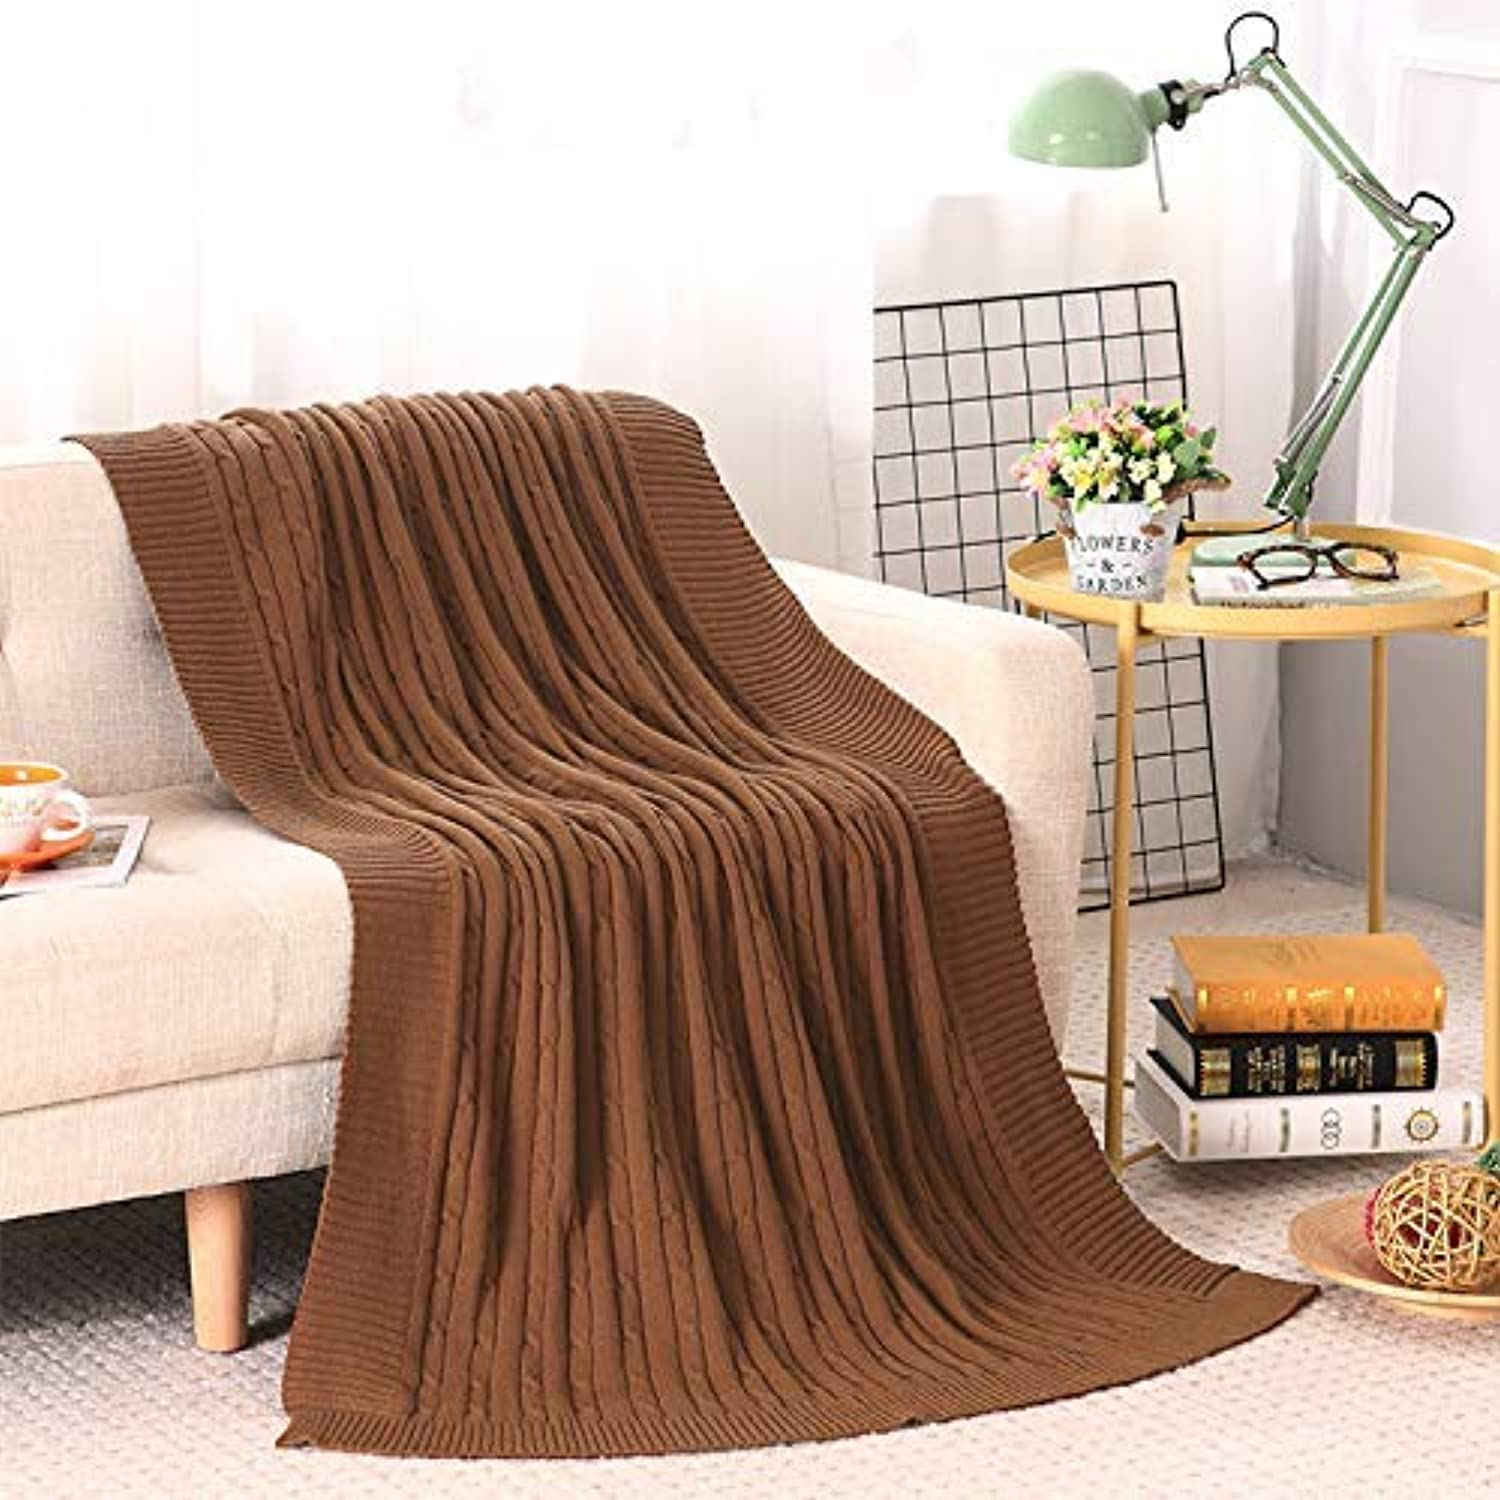 JINGB Home Cotton Knit Blanket Small Linen Flower Thread Blanket Baby Blankets air Travel and Leisure Sofa Blanket Brown,180cm200cm (Size   120cm180cm)